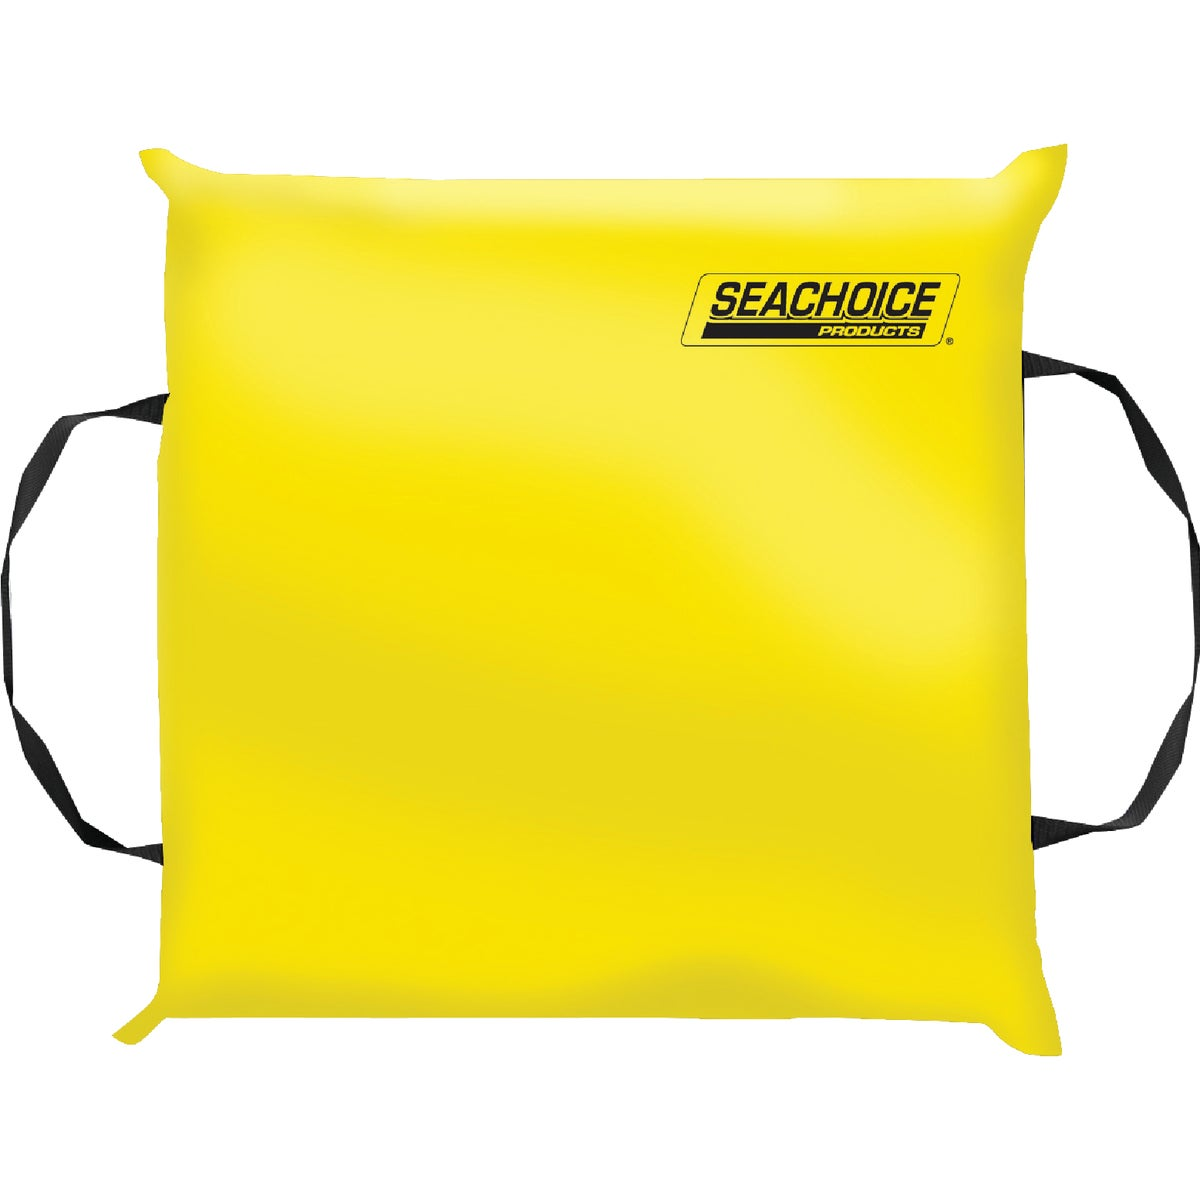 YELLOW THROW CUSHION - 44900 by Seachoice Prod